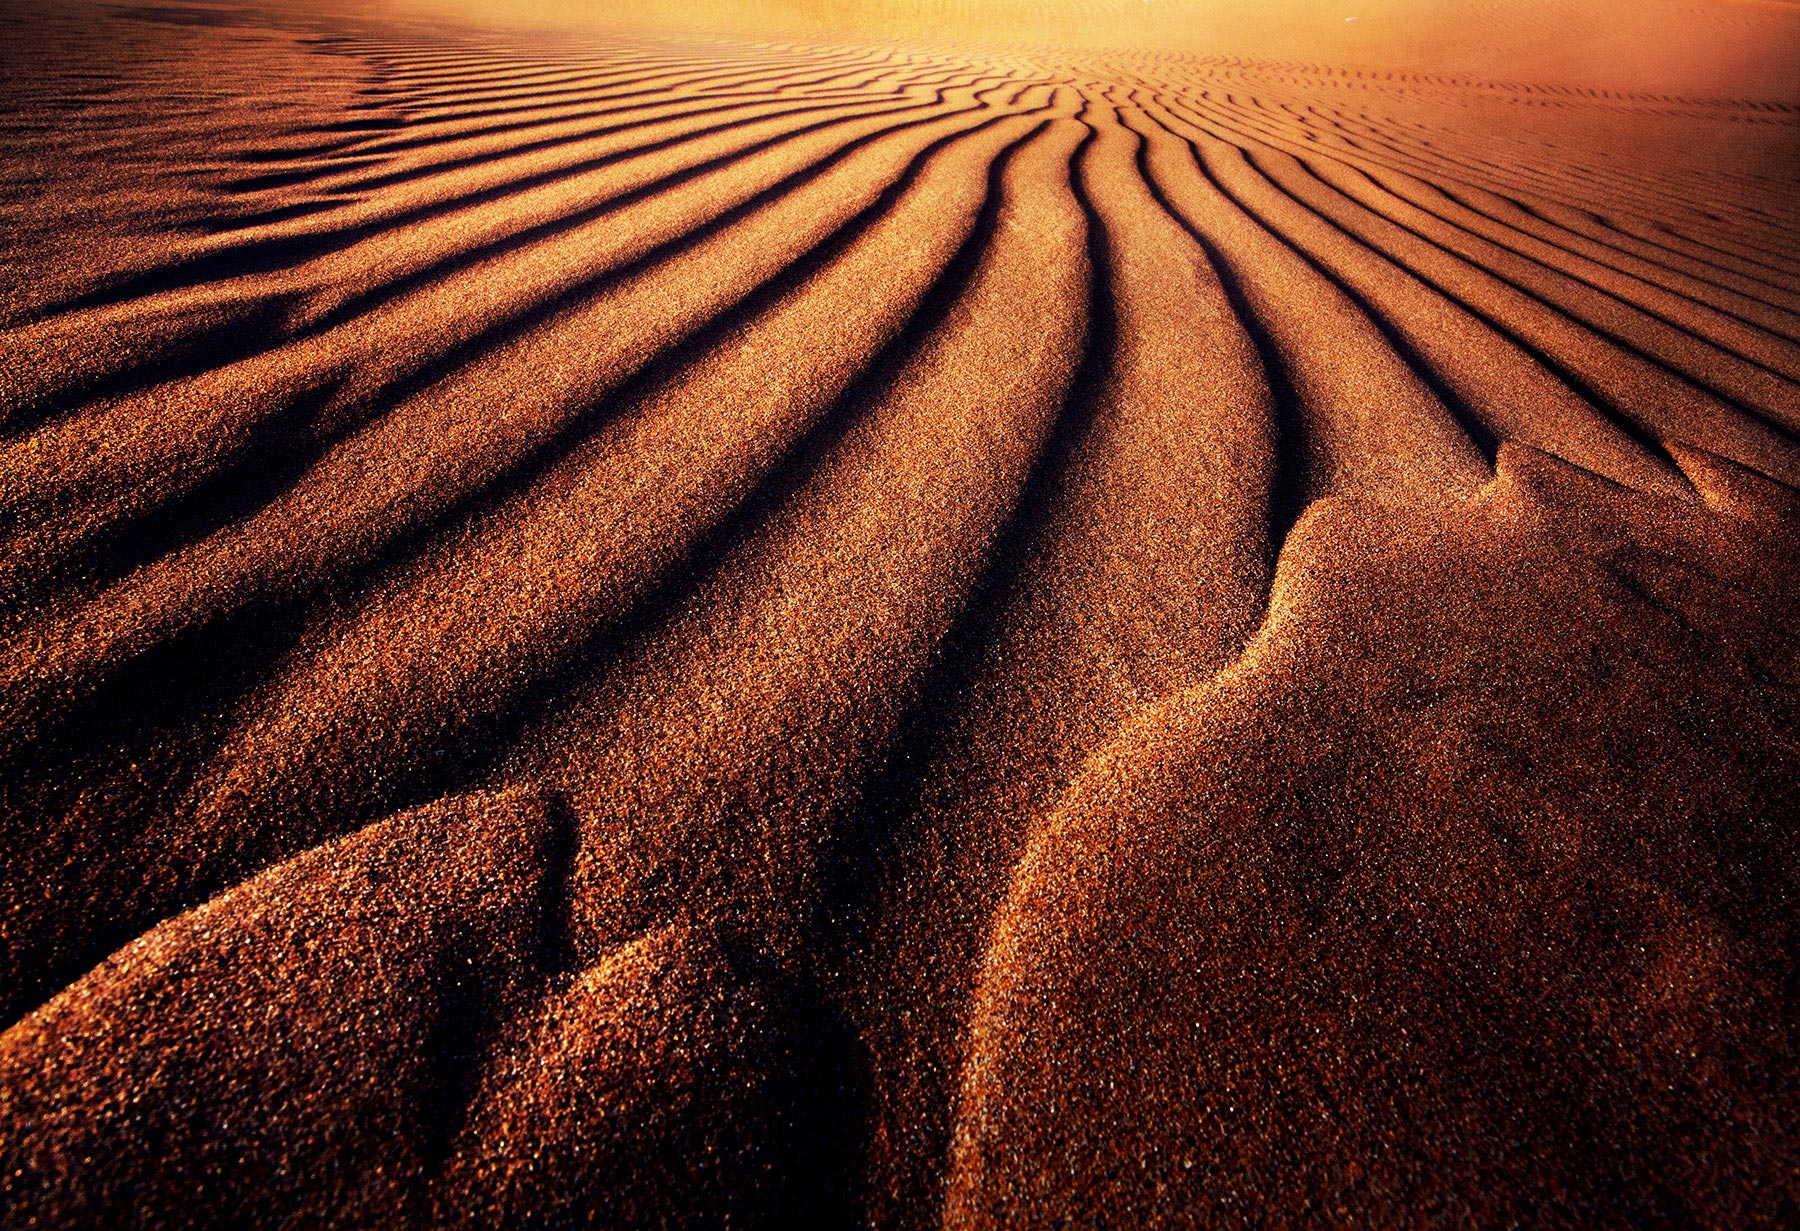 Sand, sand, sand and more sand. Just a little light, contrast and you have a powerfully graphic abstraction. This type of photography...